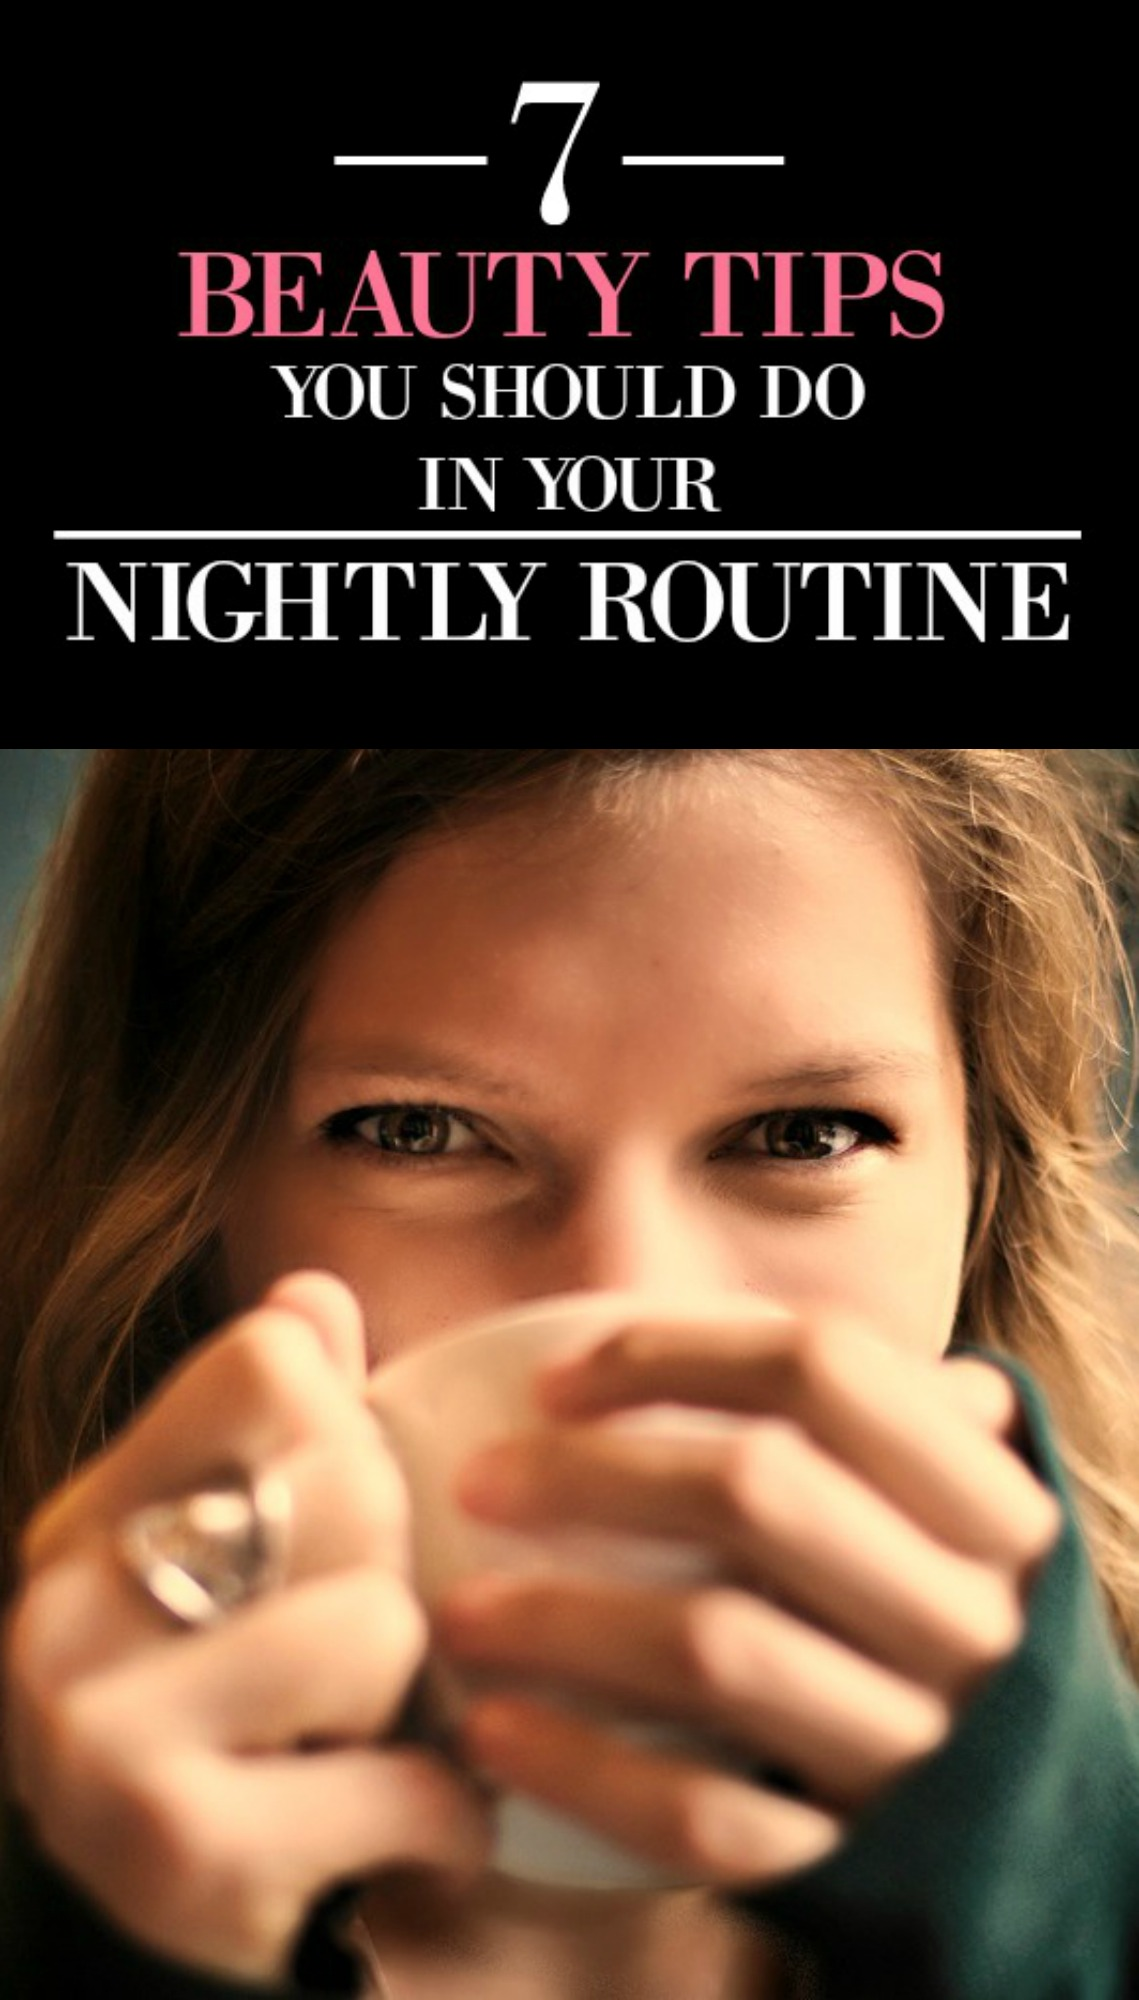 7 beauty tips you should do in your nightly routine